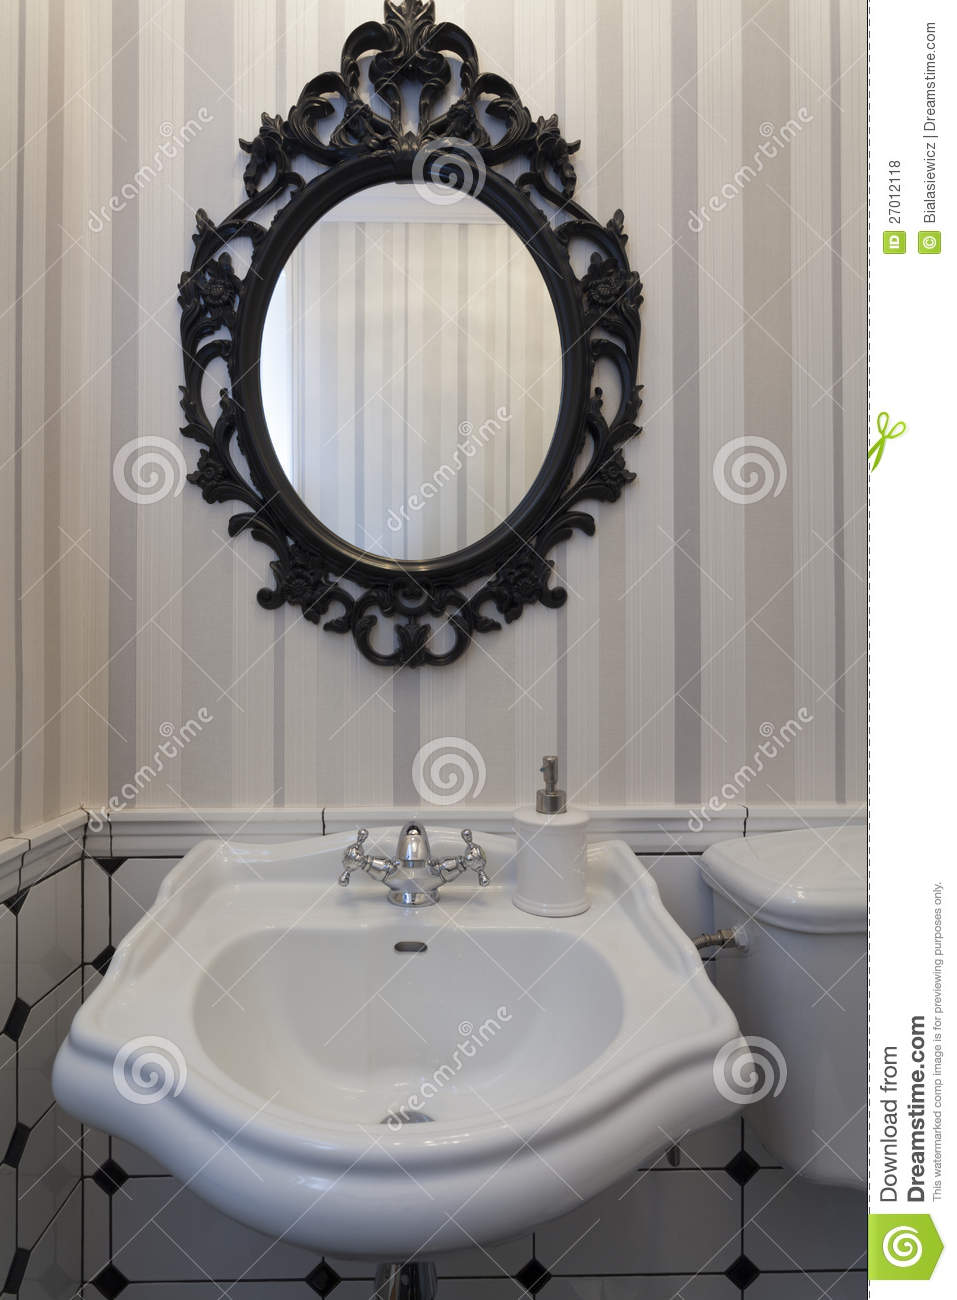 vintage toilet with a mirror royalty free stock photos image 27012118. Black Bedroom Furniture Sets. Home Design Ideas